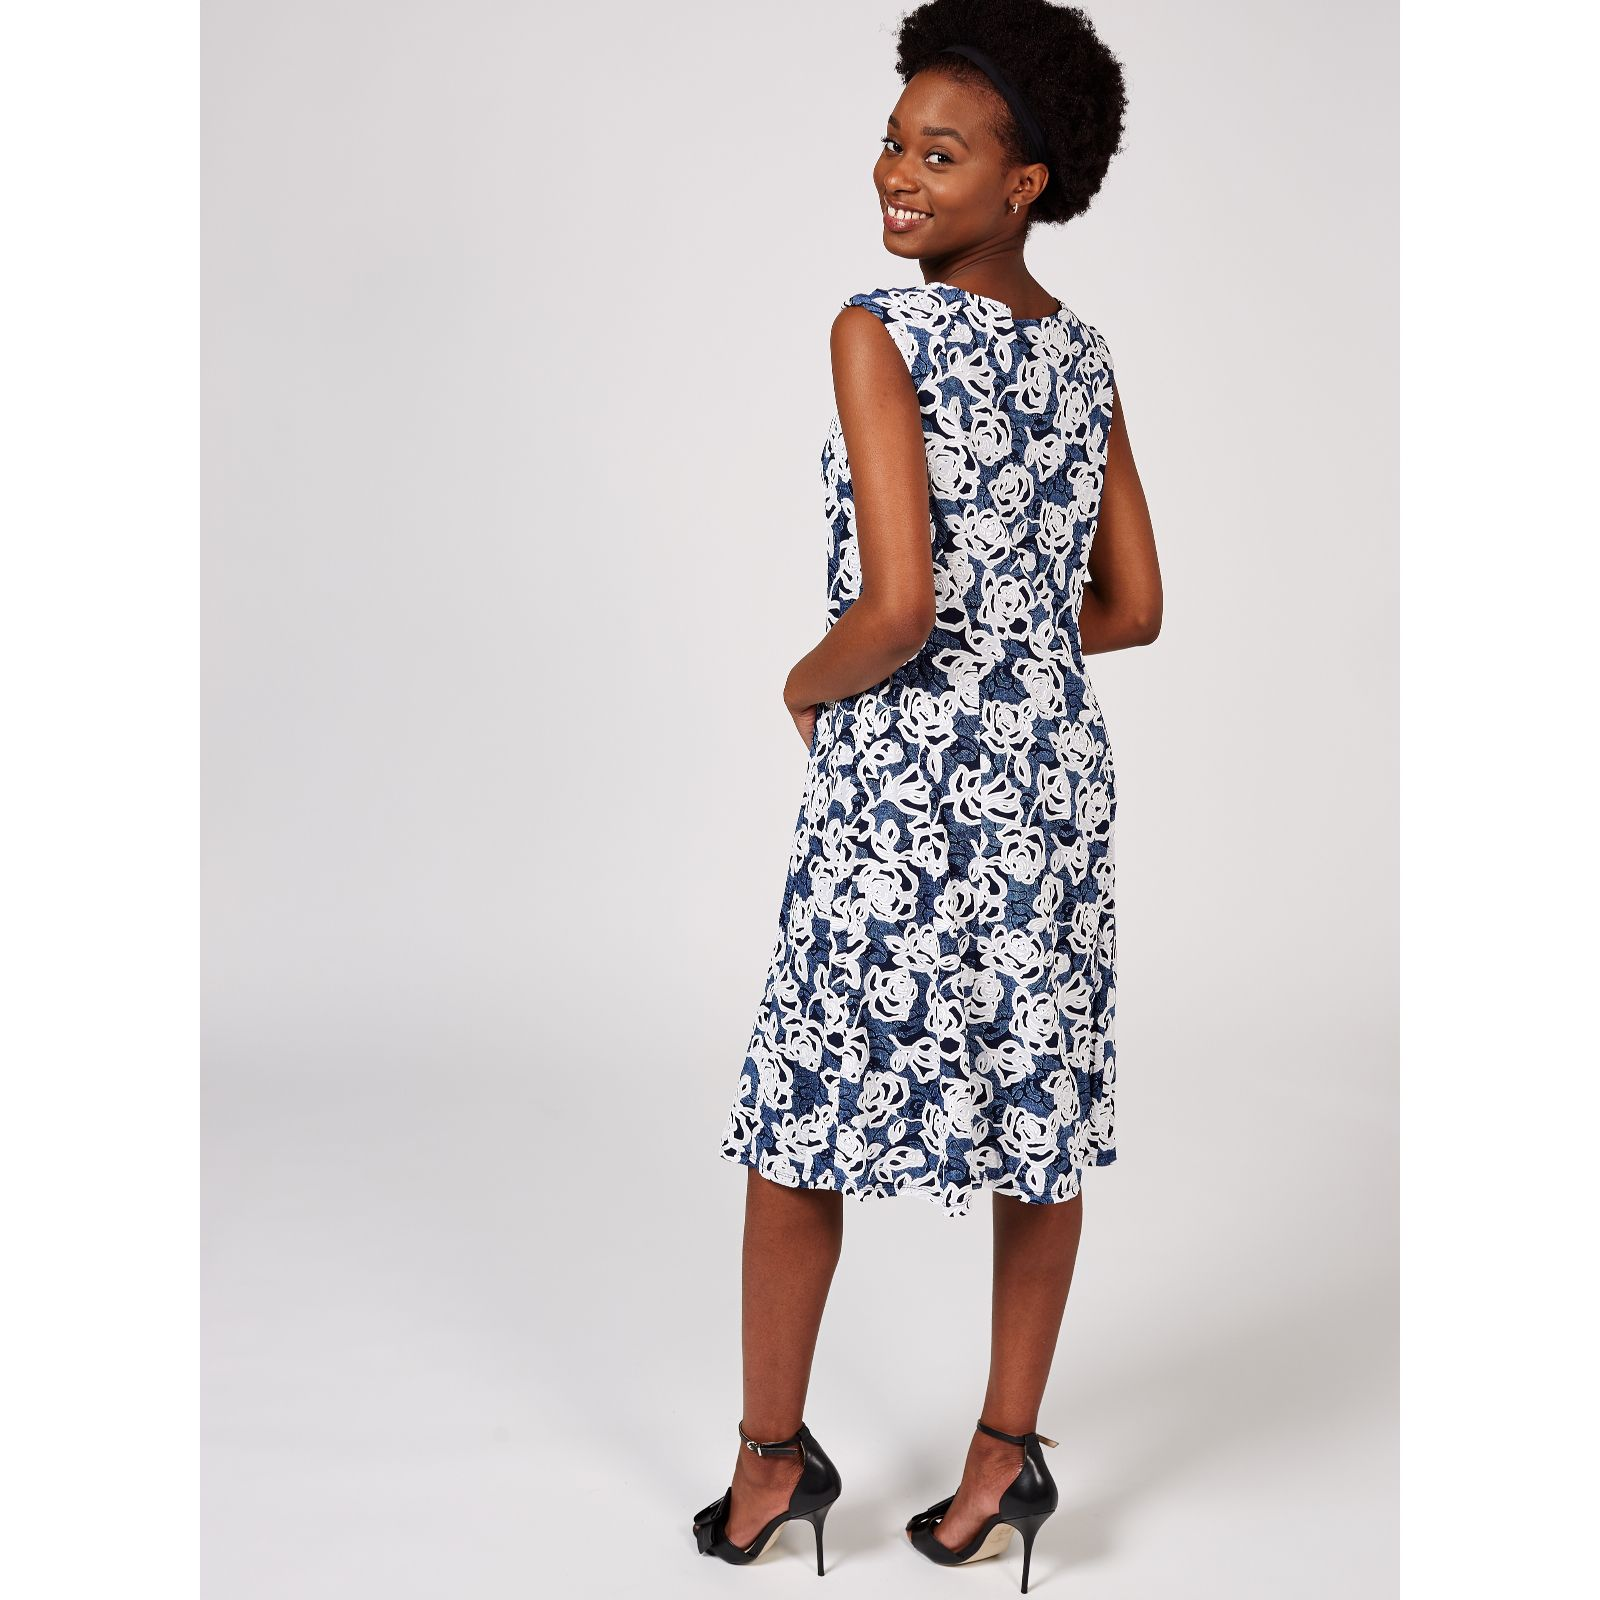 6af52086c1b85e Ronni Nicole Sleeveless Printed Fit   Flare Dress - QVC UK